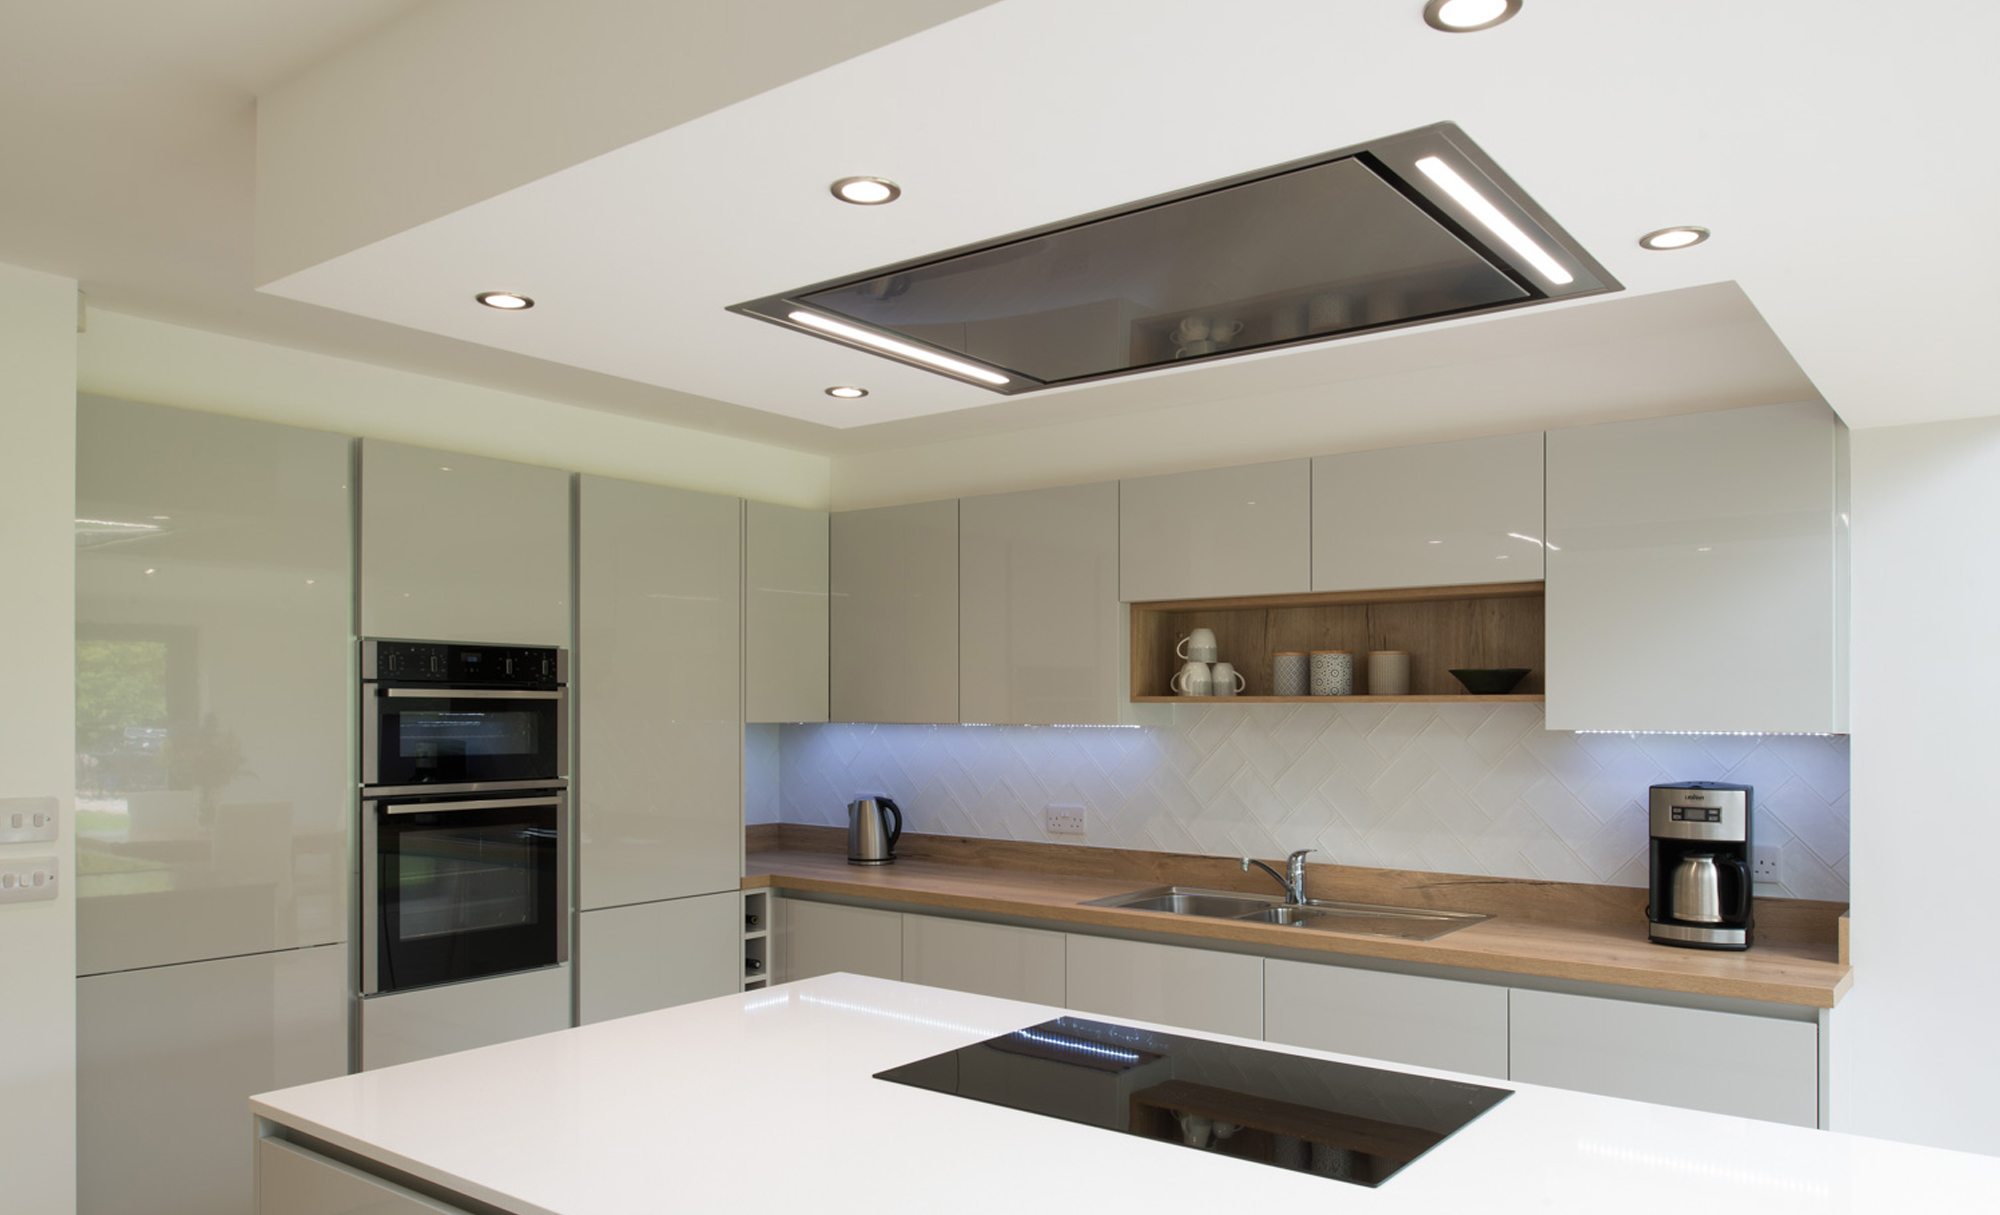 Kitchen Stori Zola Gloss Light Grey Kitchen by Maelstrom for a home in Lancaster Hob